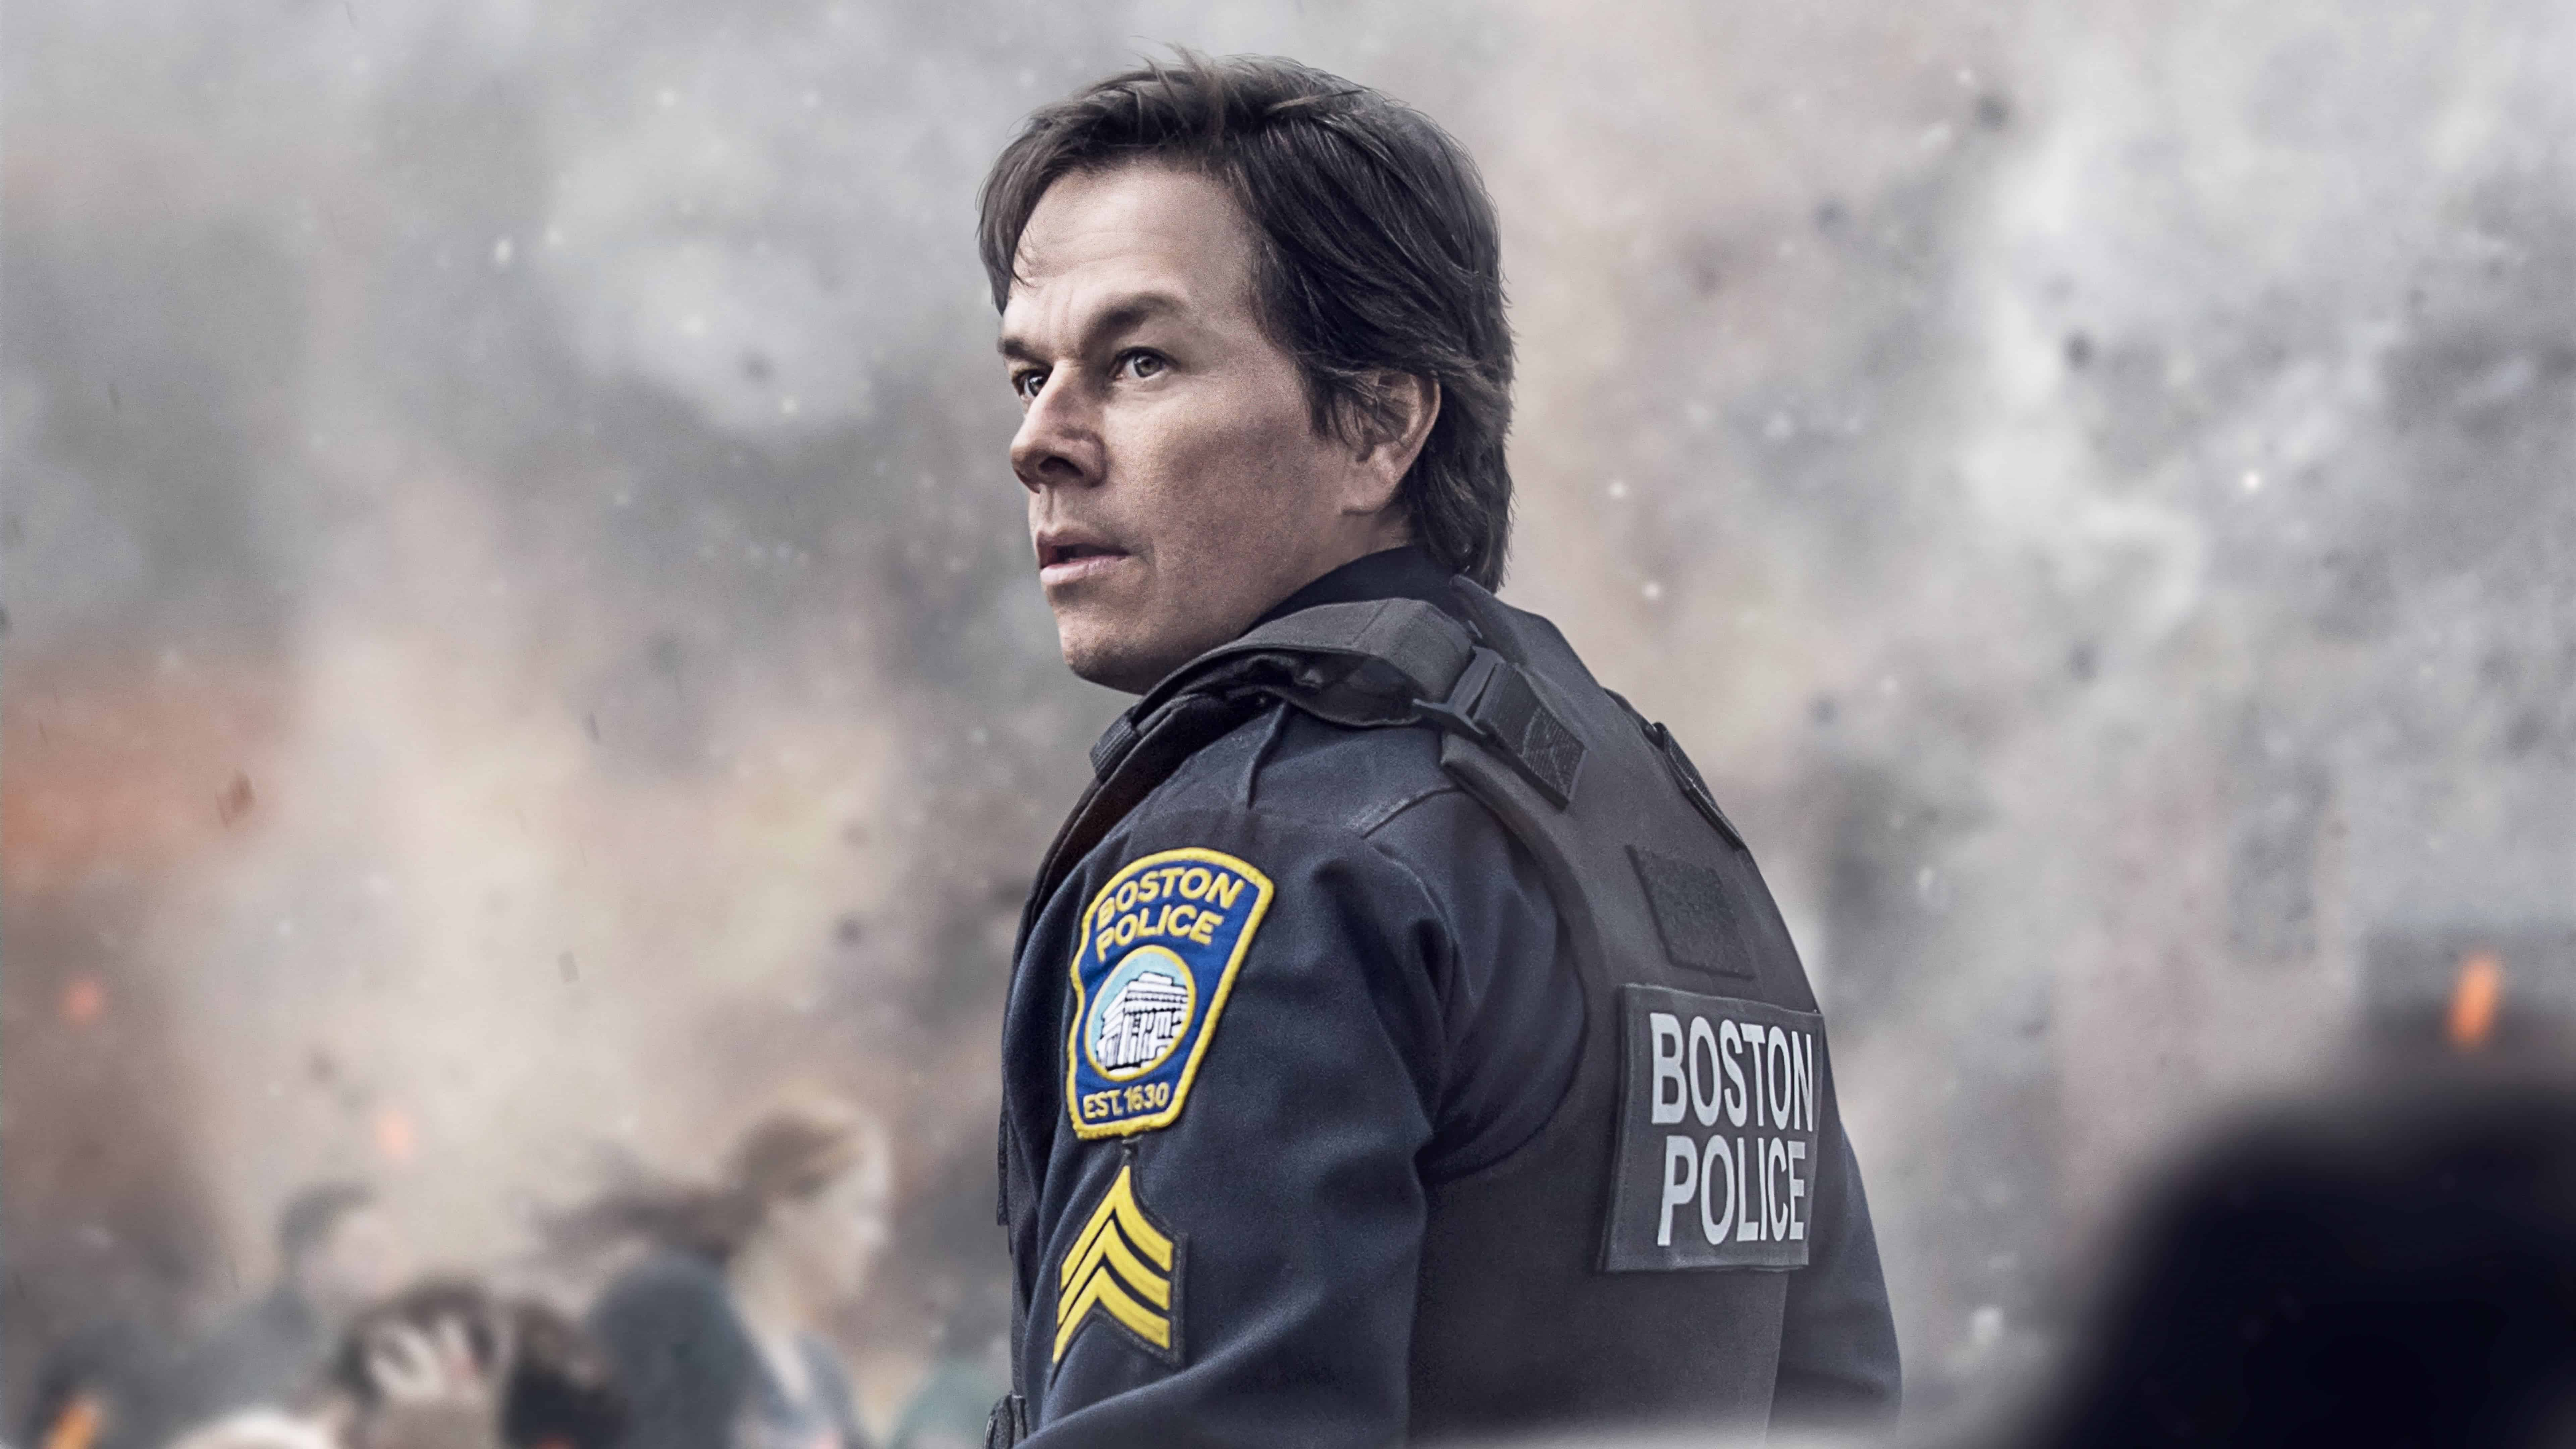 7680x4320 - Mark Wahlberg Wallpapers 16